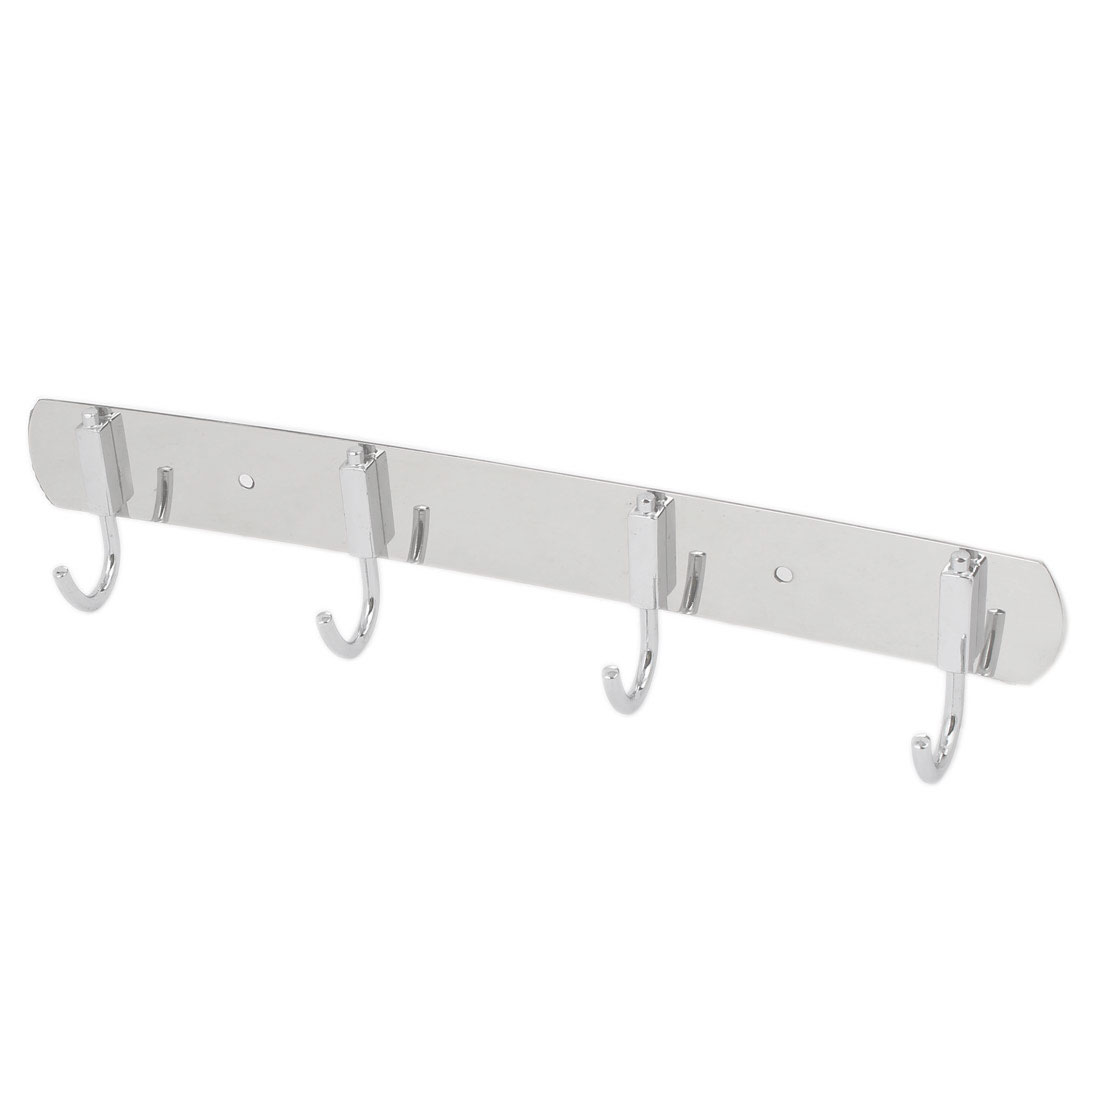 Home Bathroom Bedroom Clothes Towel Coat Bag 4 Hooks Stainless Steel Wall Hook